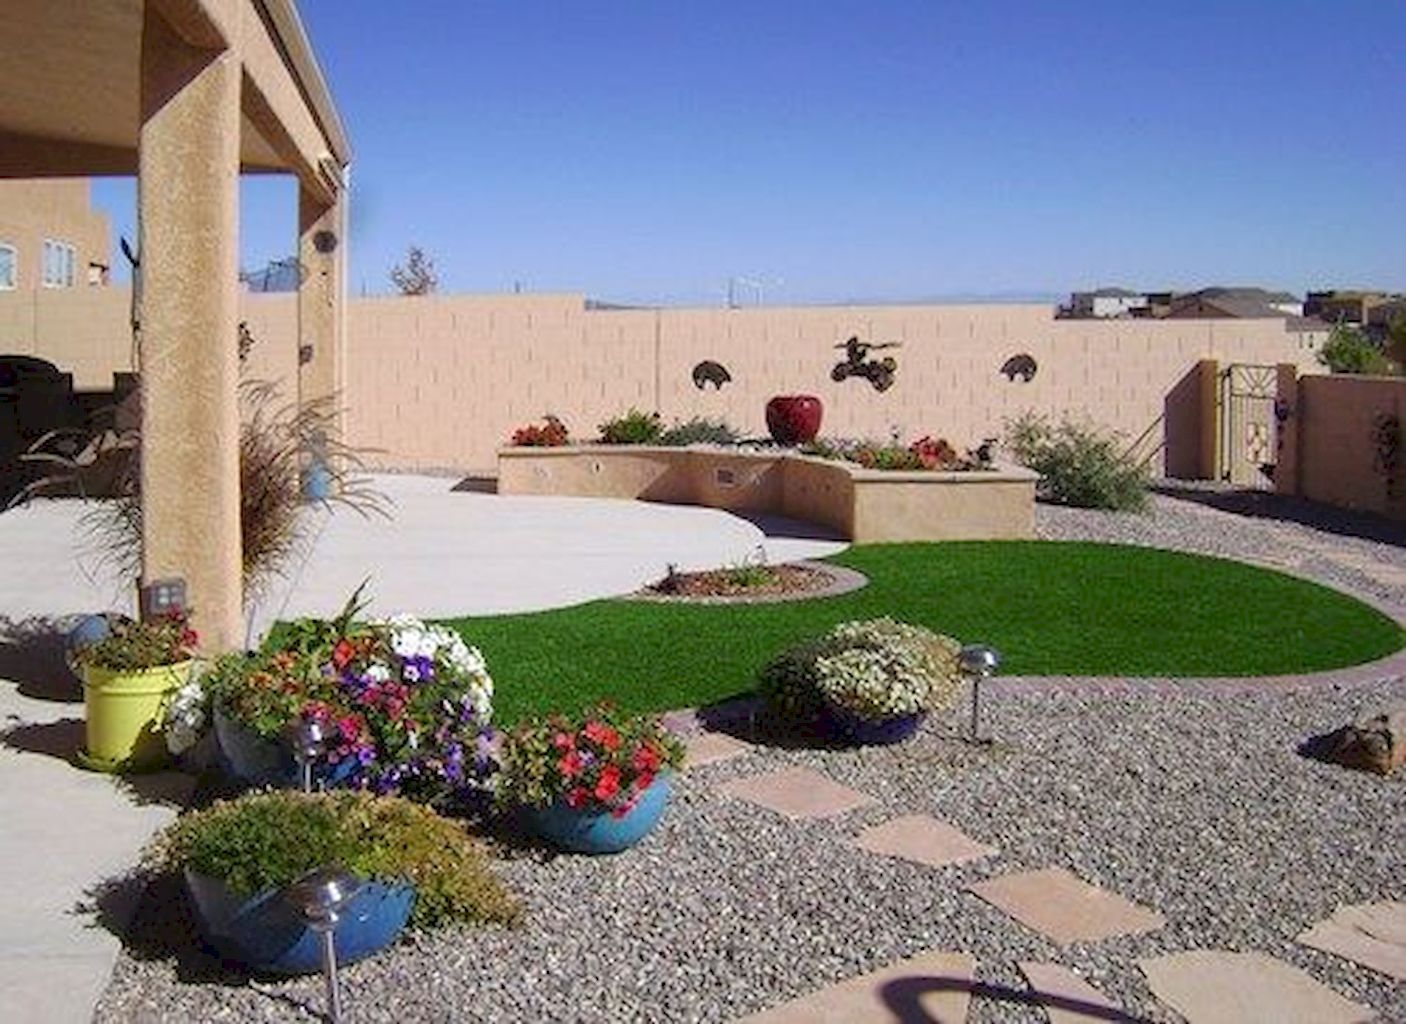 Backyard Landscaping Ideas To Spruce Up Your Home Appeal ... on Desert Landscape Ideas For Backyards id=24783